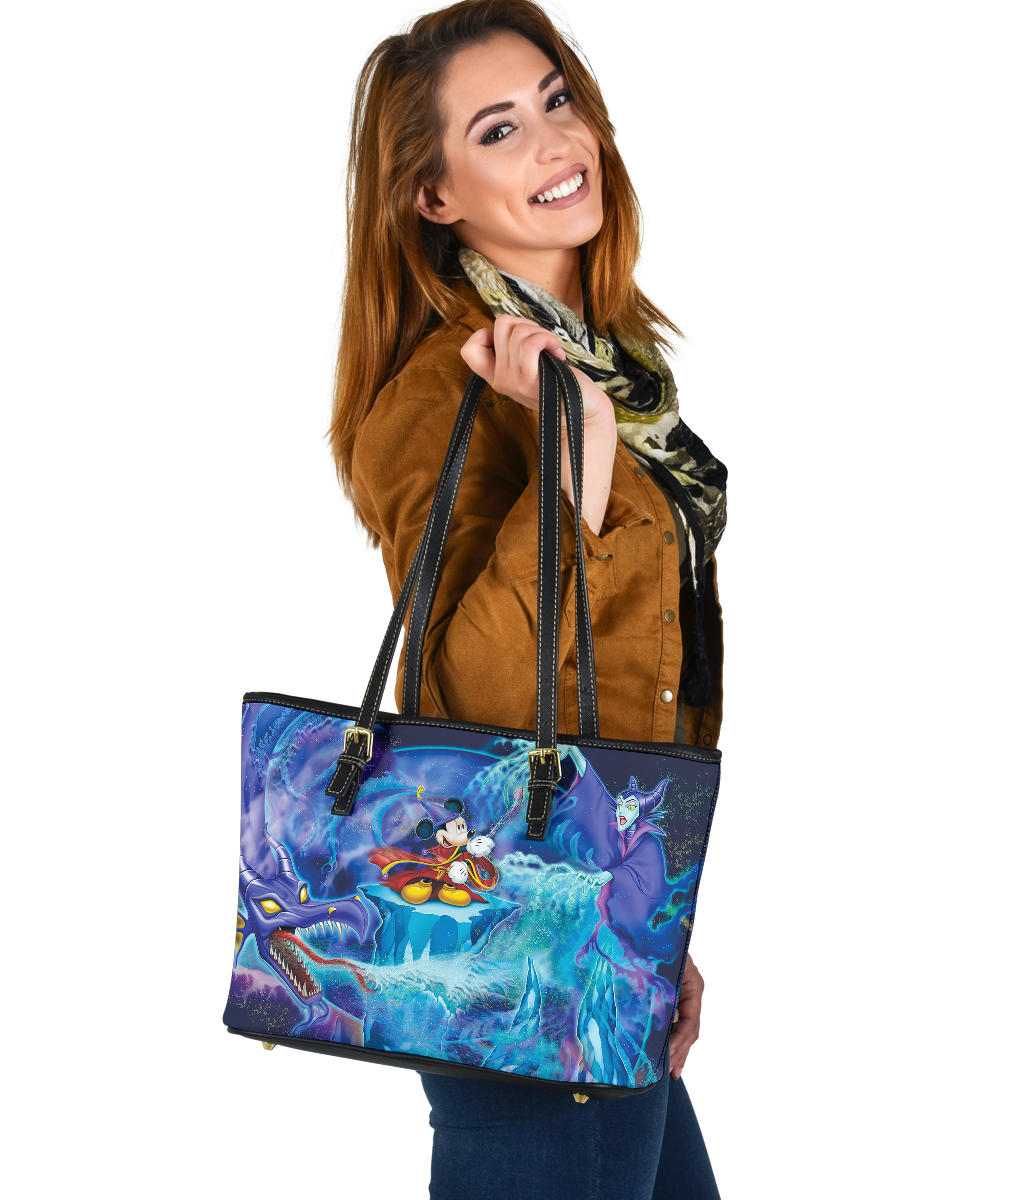 Maleficent Small Leather Tote  [Express Shipping Applied]